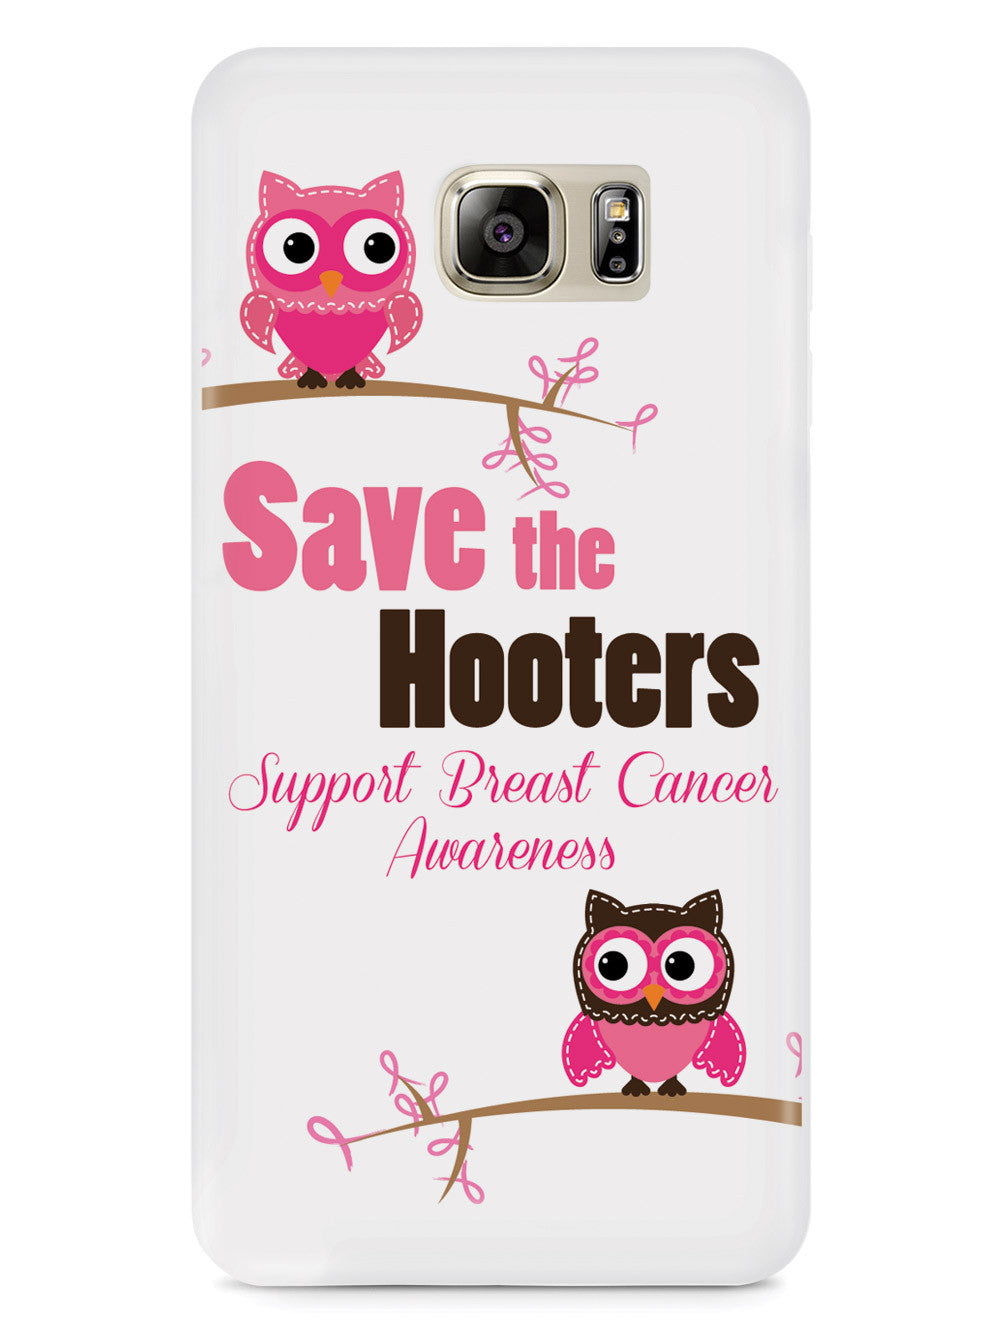 Save the Hooters Case